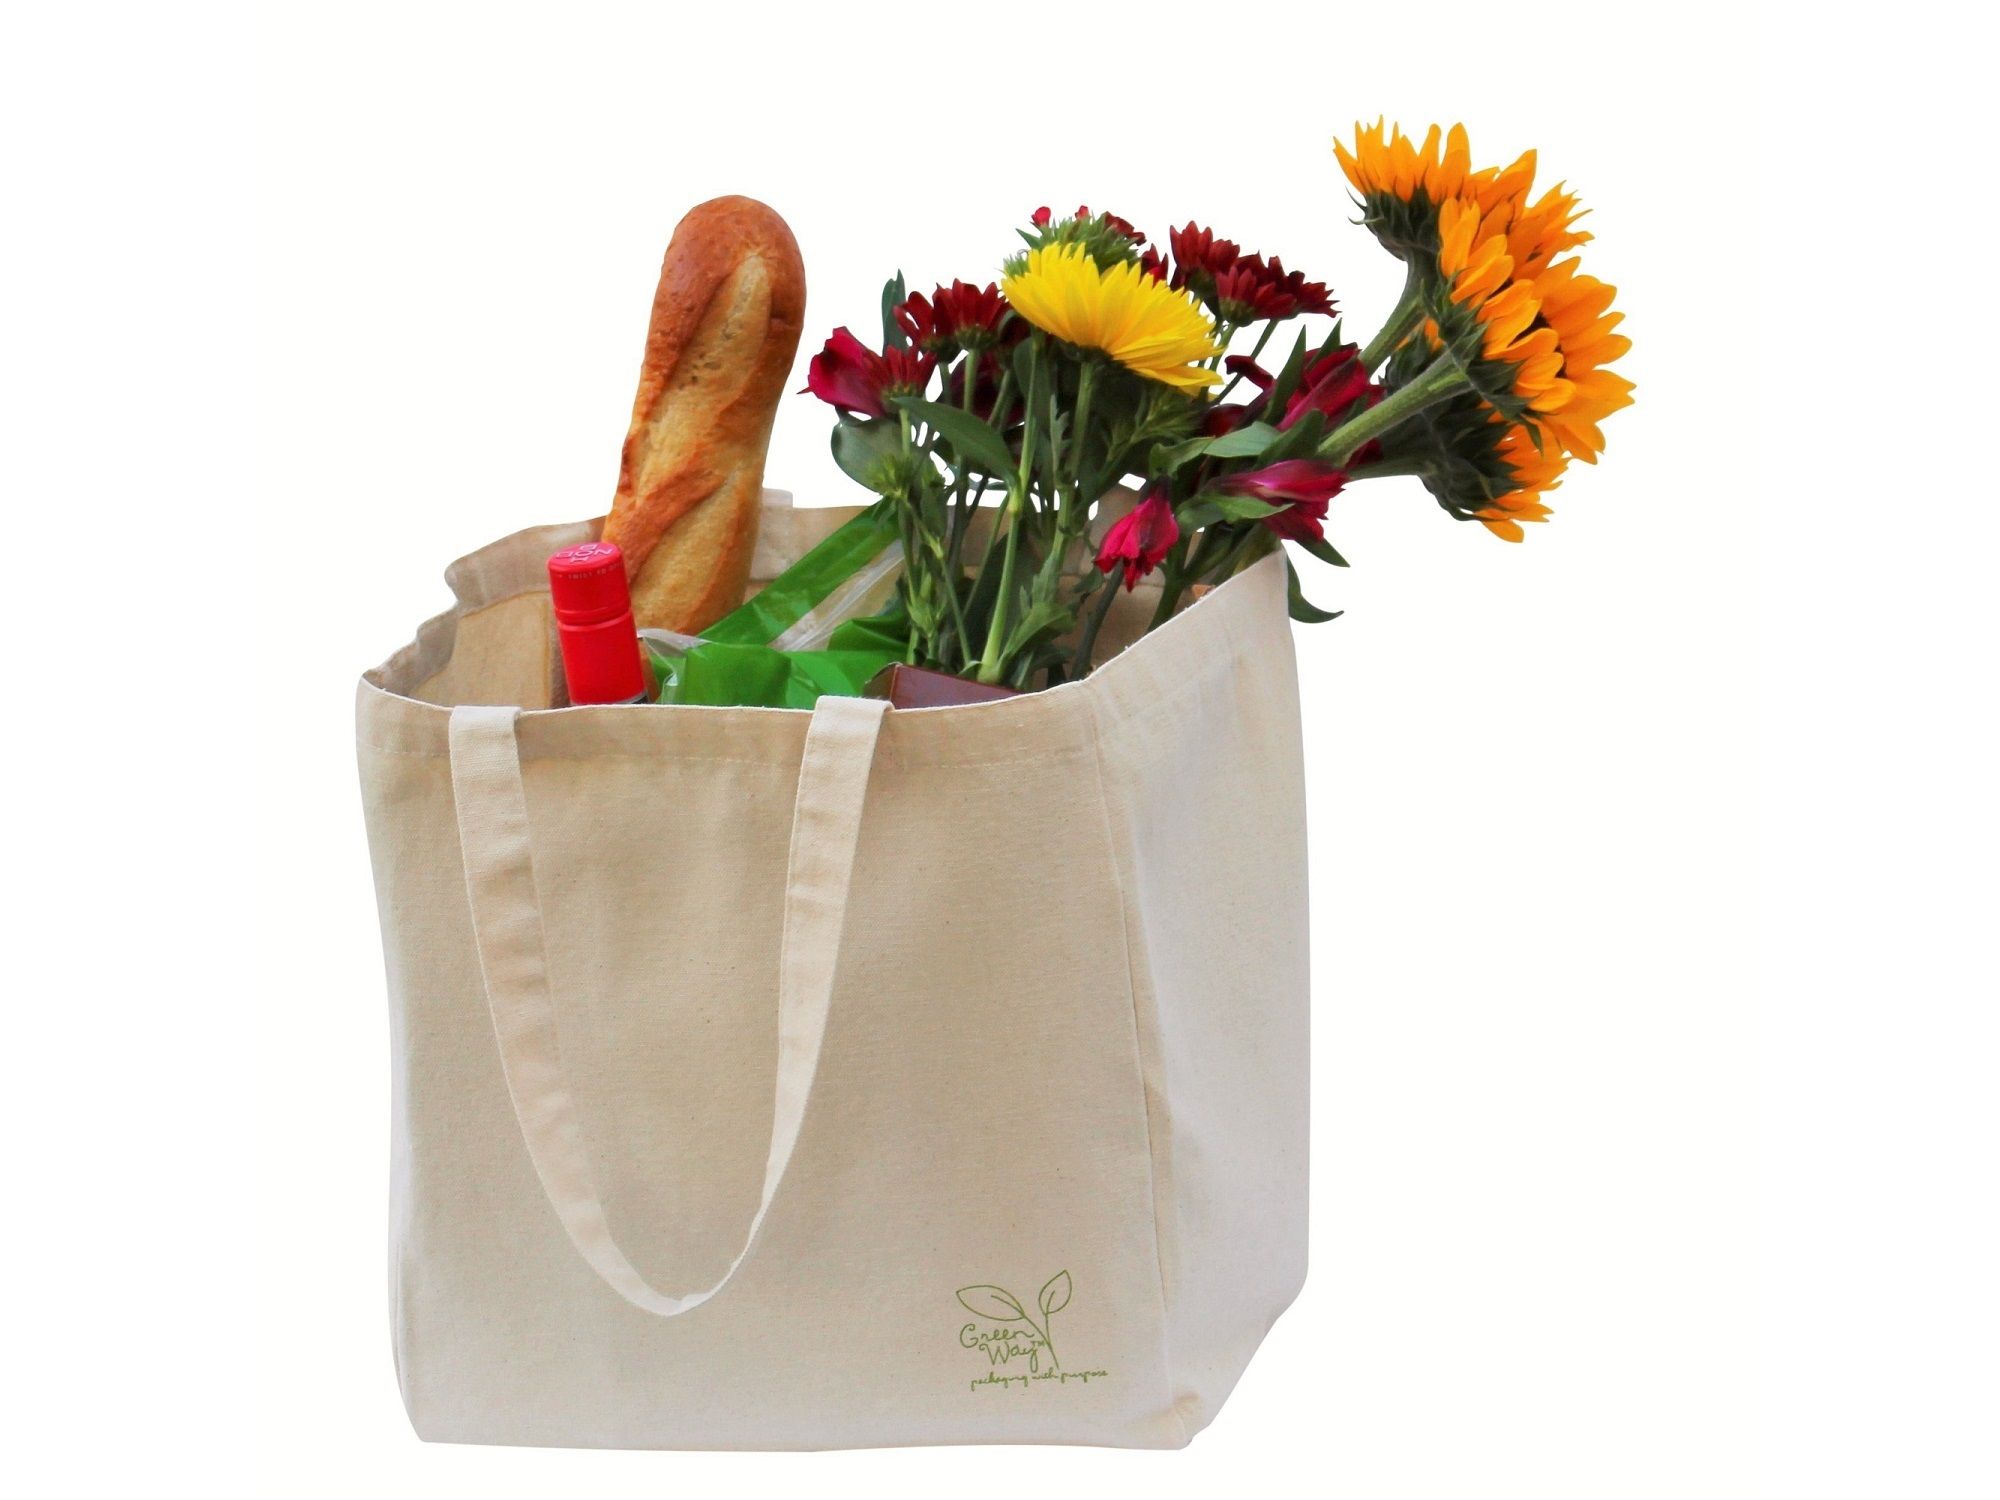 Canvas Tote Bag nwith Flowers and Groceries inside